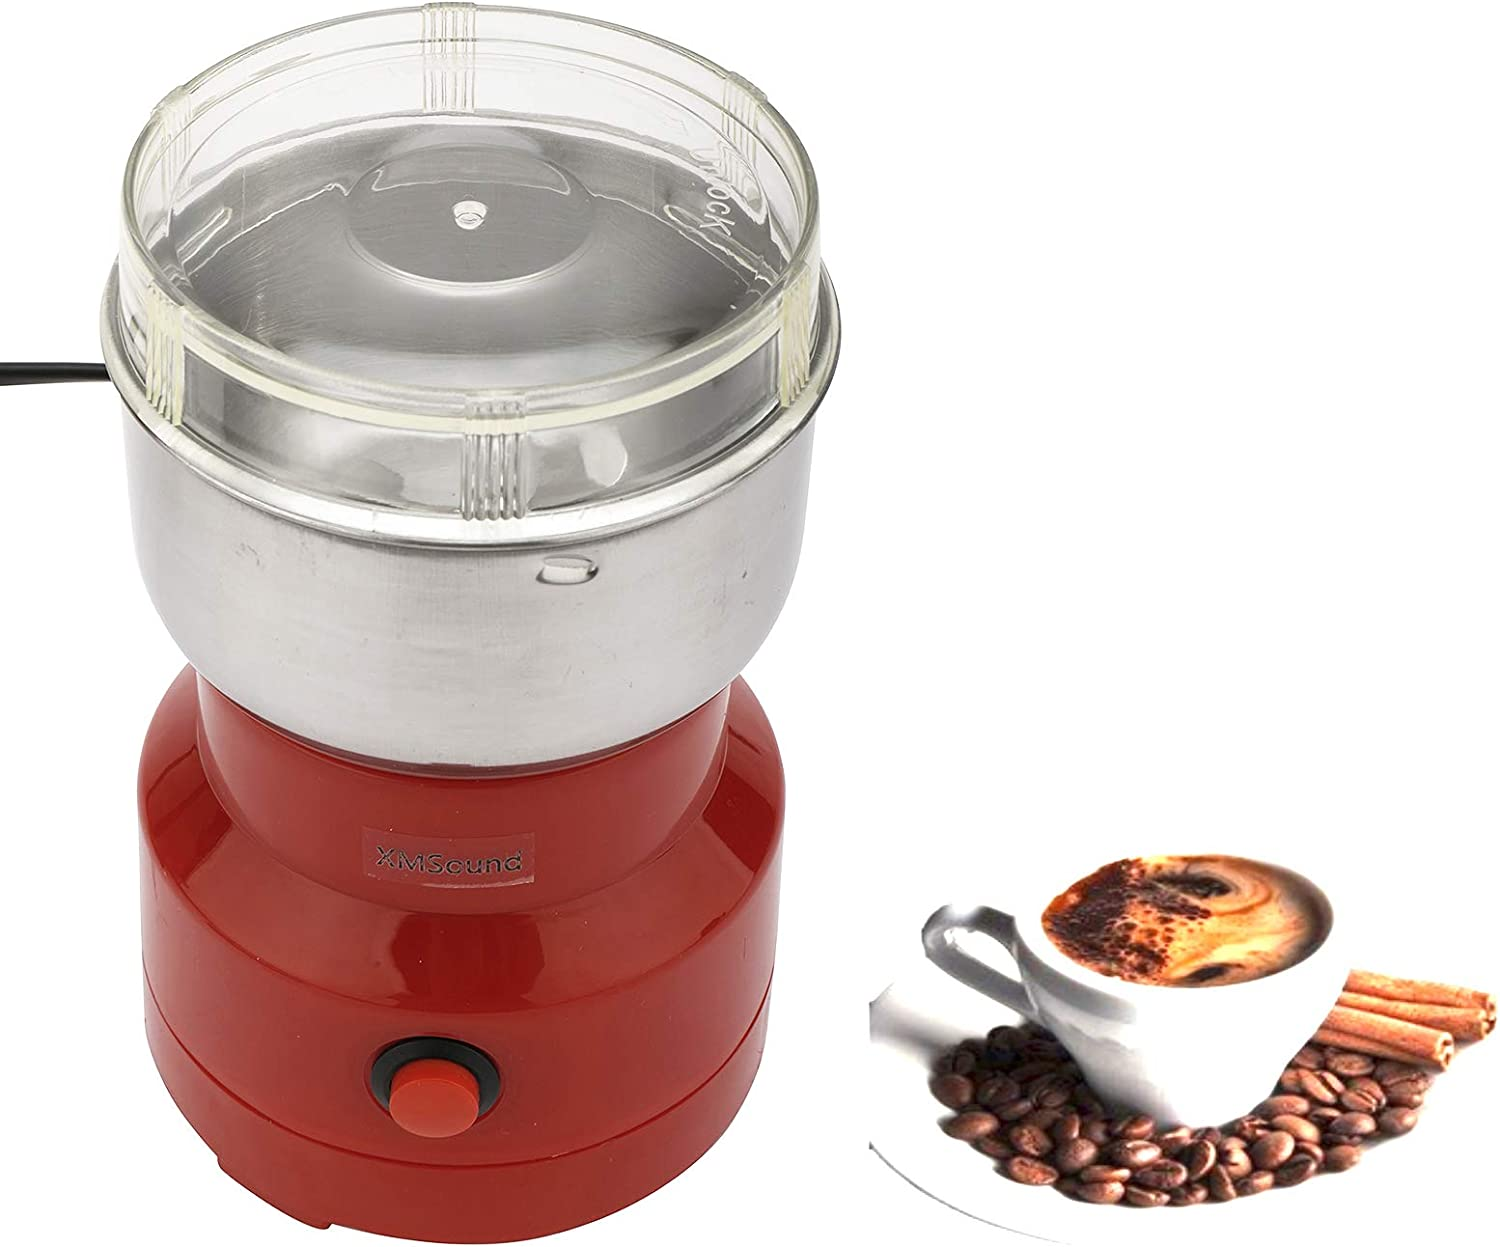 XMSound Multi-Function Grinder,150W Multi-Function Coffee Grinder Food Spice Mill Smash Machine for Home Herbs/Spices/Nuts/Grains/Coffee Bean Grinding (Red)